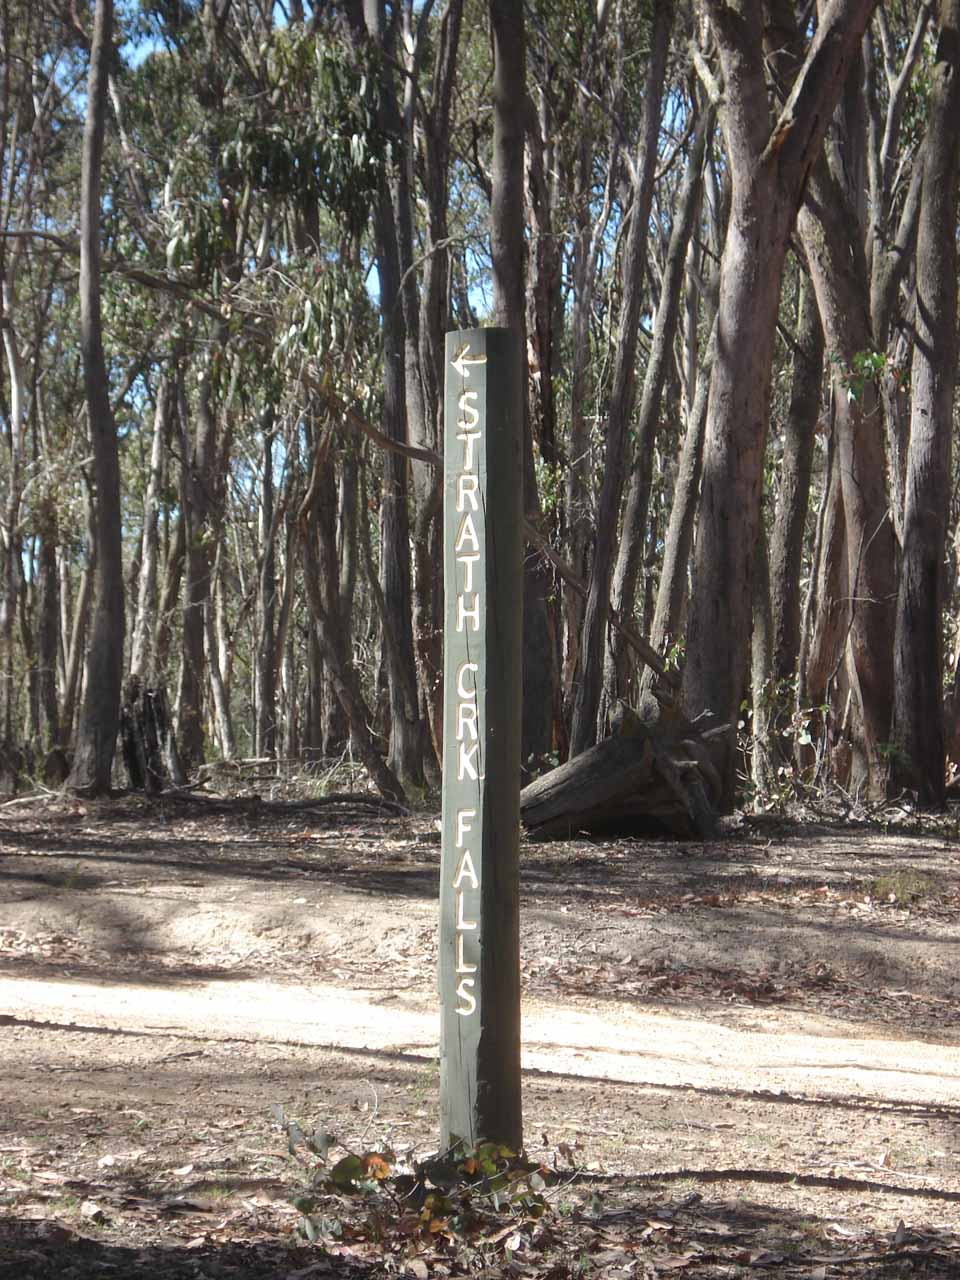 A sign pointing the way towards Strath Creek Falls at the start of the one-way anticlockwise loop